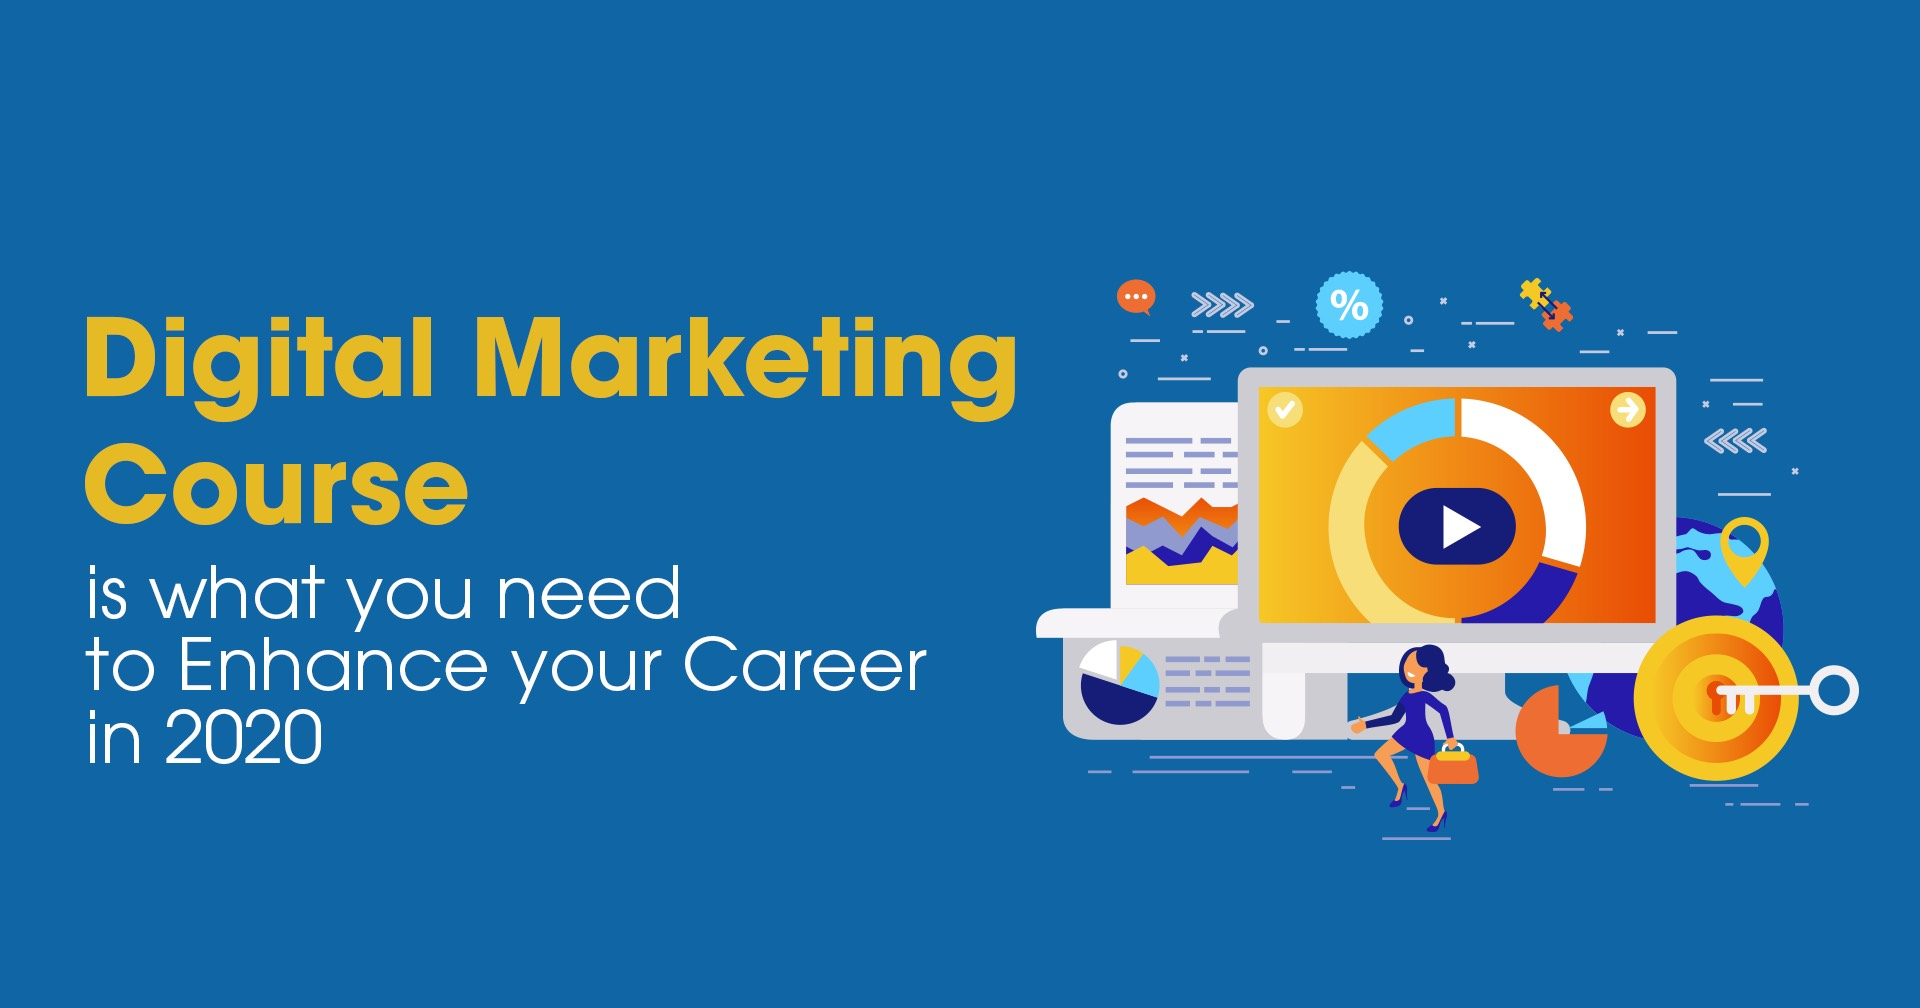 Digital Marketing Course is what you need to enhance your career in 2020